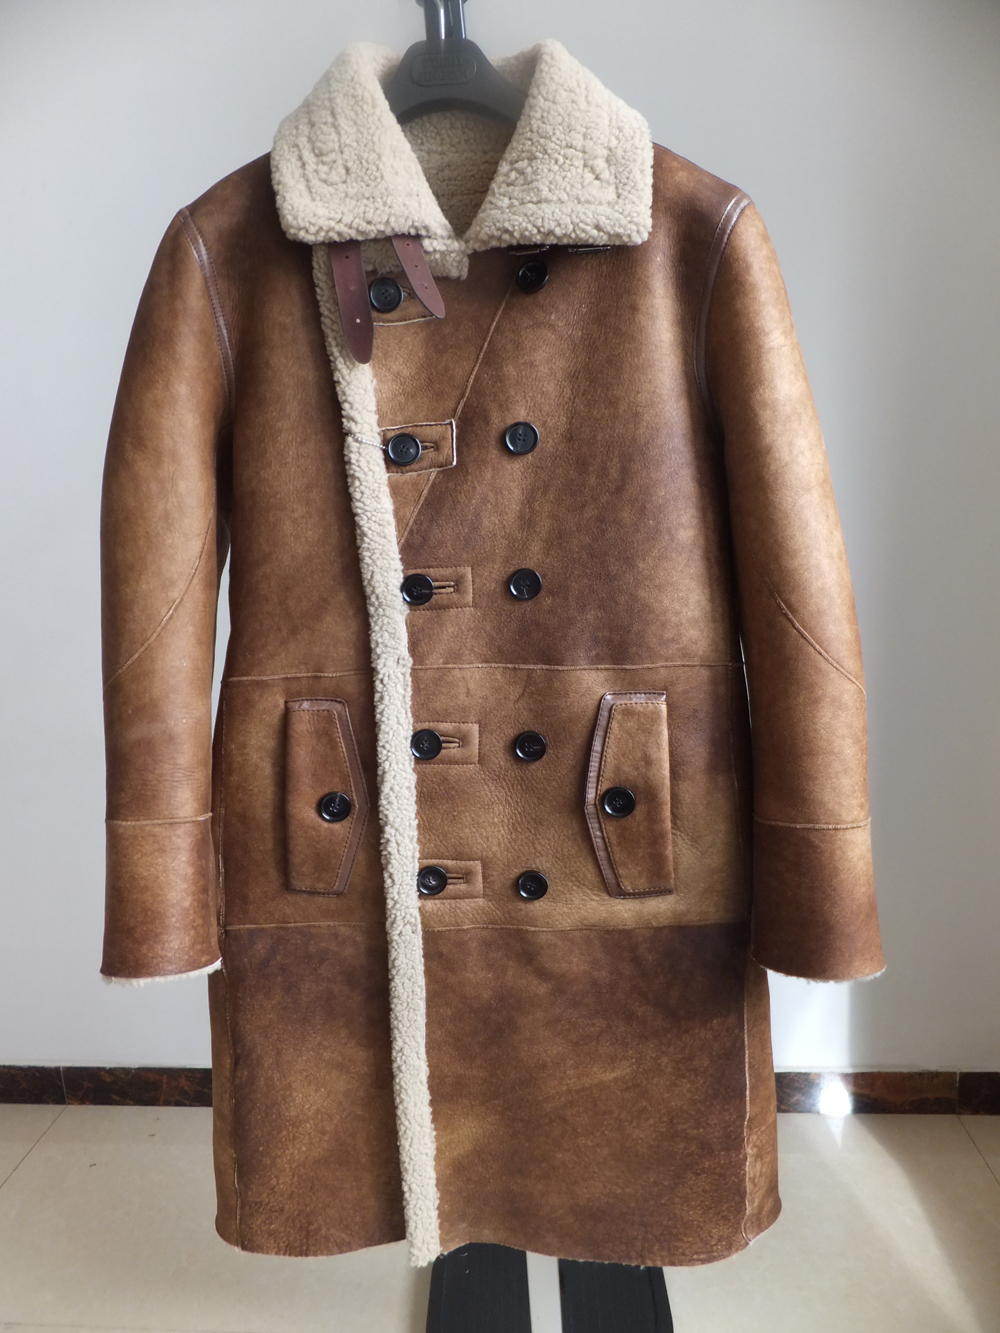 H160d6714a3d34ad38f93c5b3dfbddeb49 Fashion Real Sheepskin Fur Coat Genuine Leather Male Formal Winter Long Thick Jacket Sheepskin Shearling Men Fur Coffee Coat 4XL